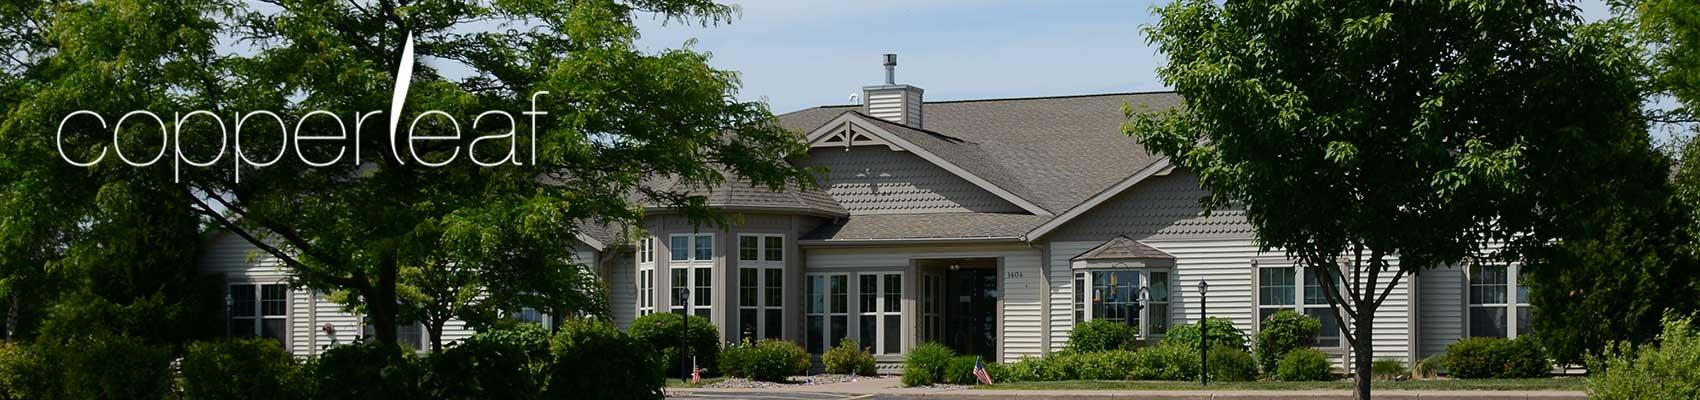 Assisted Living assisted living facilities Armstrong Wisconsin Fond du Lac County